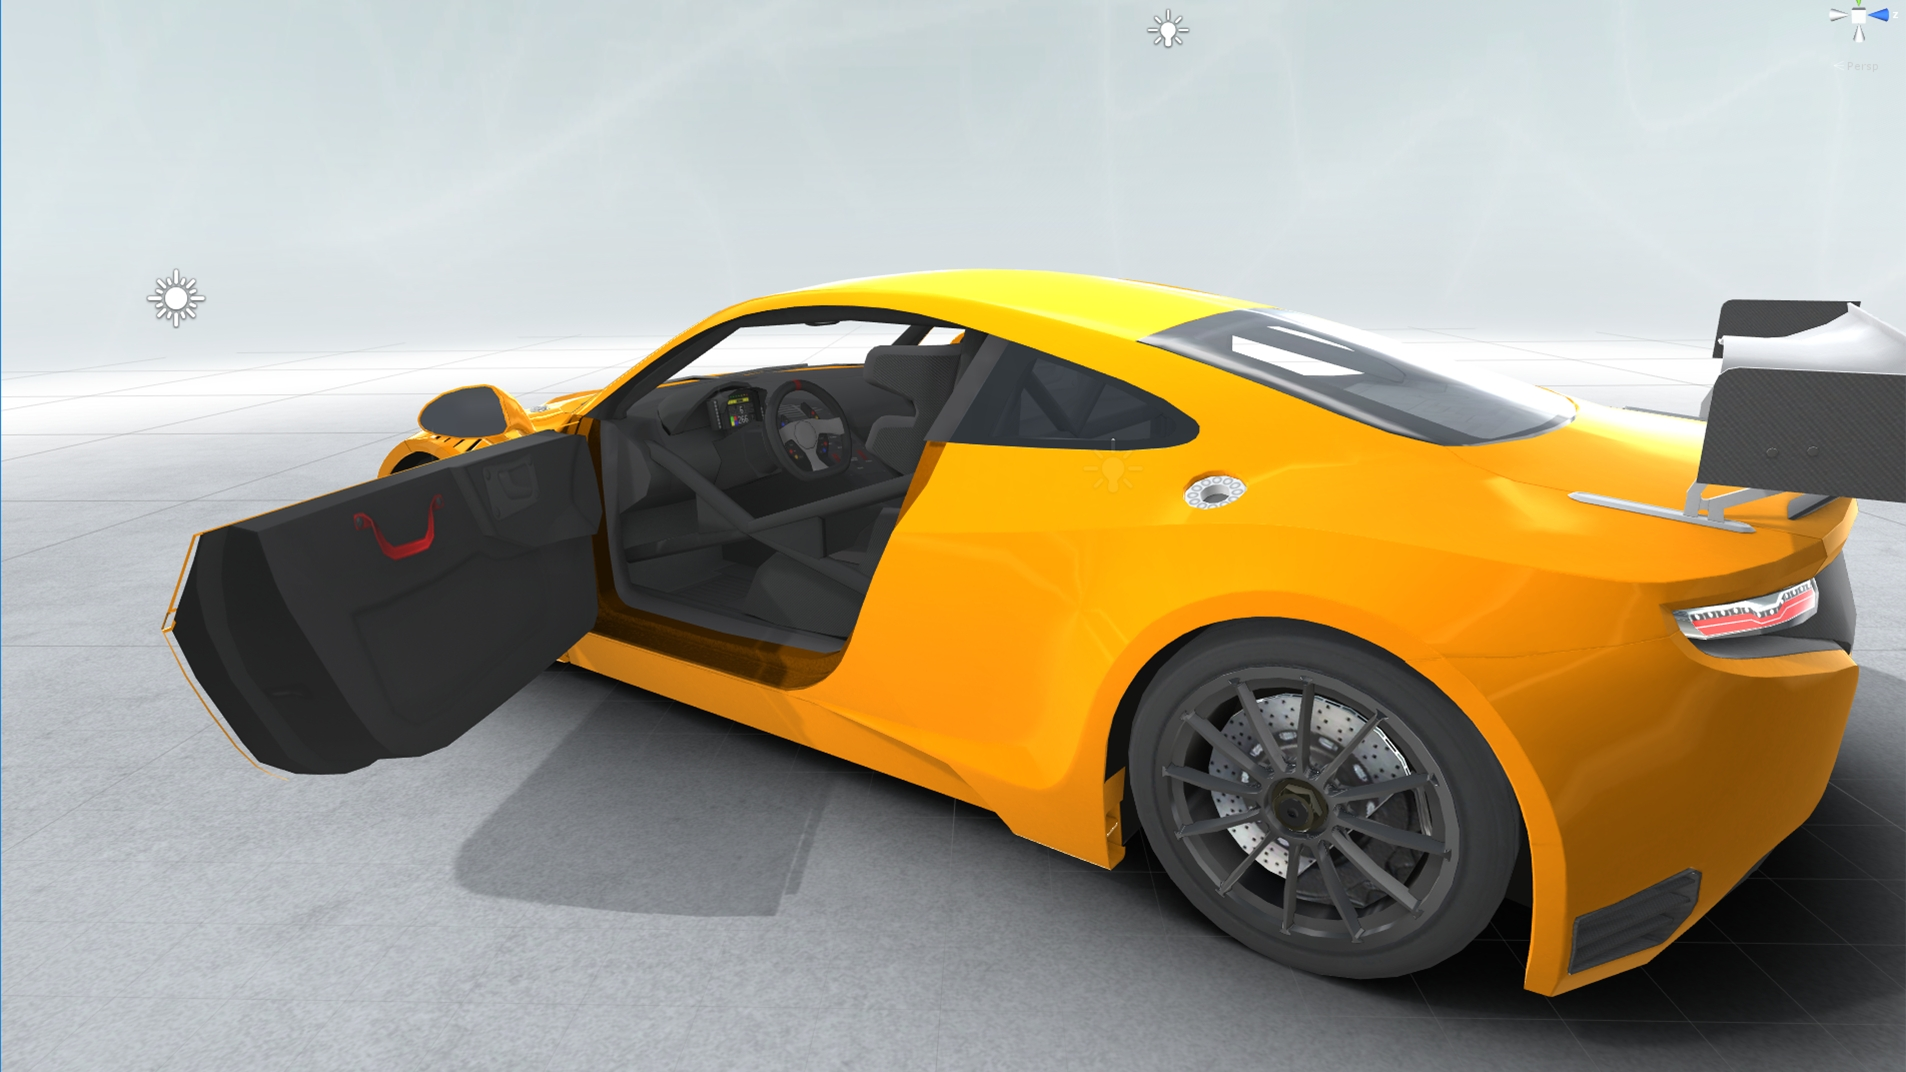 generic sports car gt3 realtime 3d model 3ds max fbx c4d lwo ma mb other obj 223732